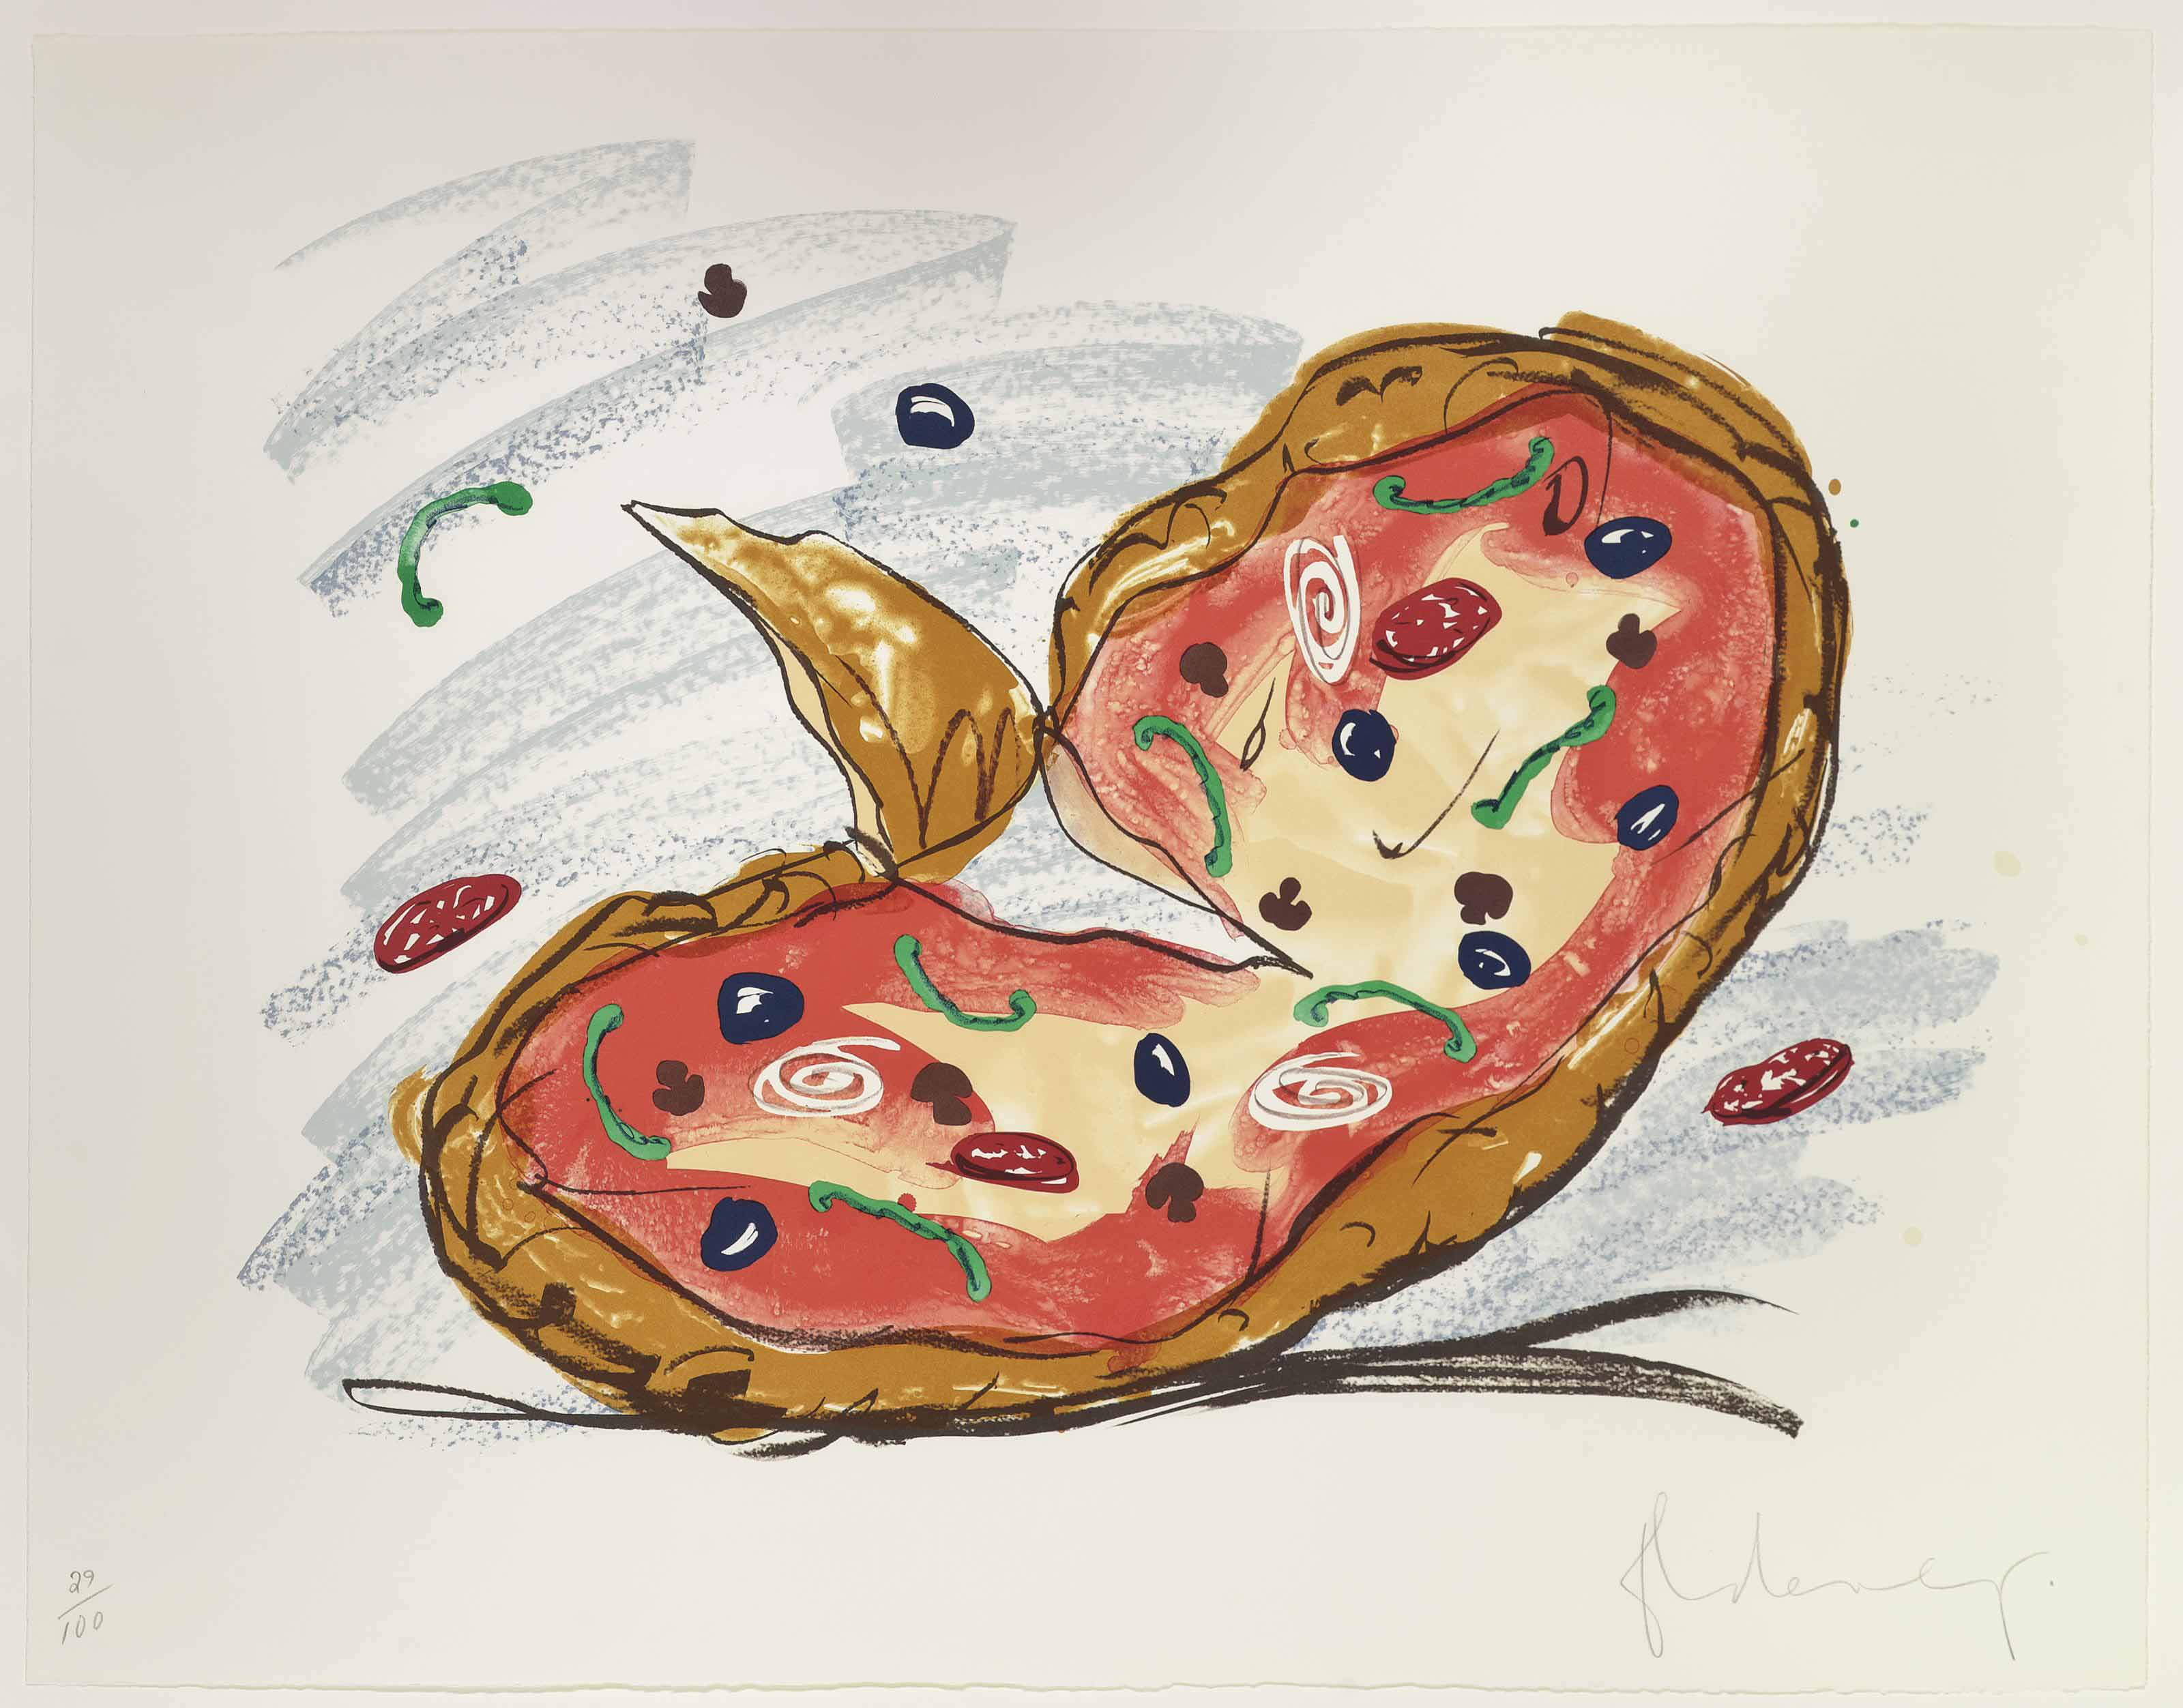 Claes Oldenburg (b. 1929)